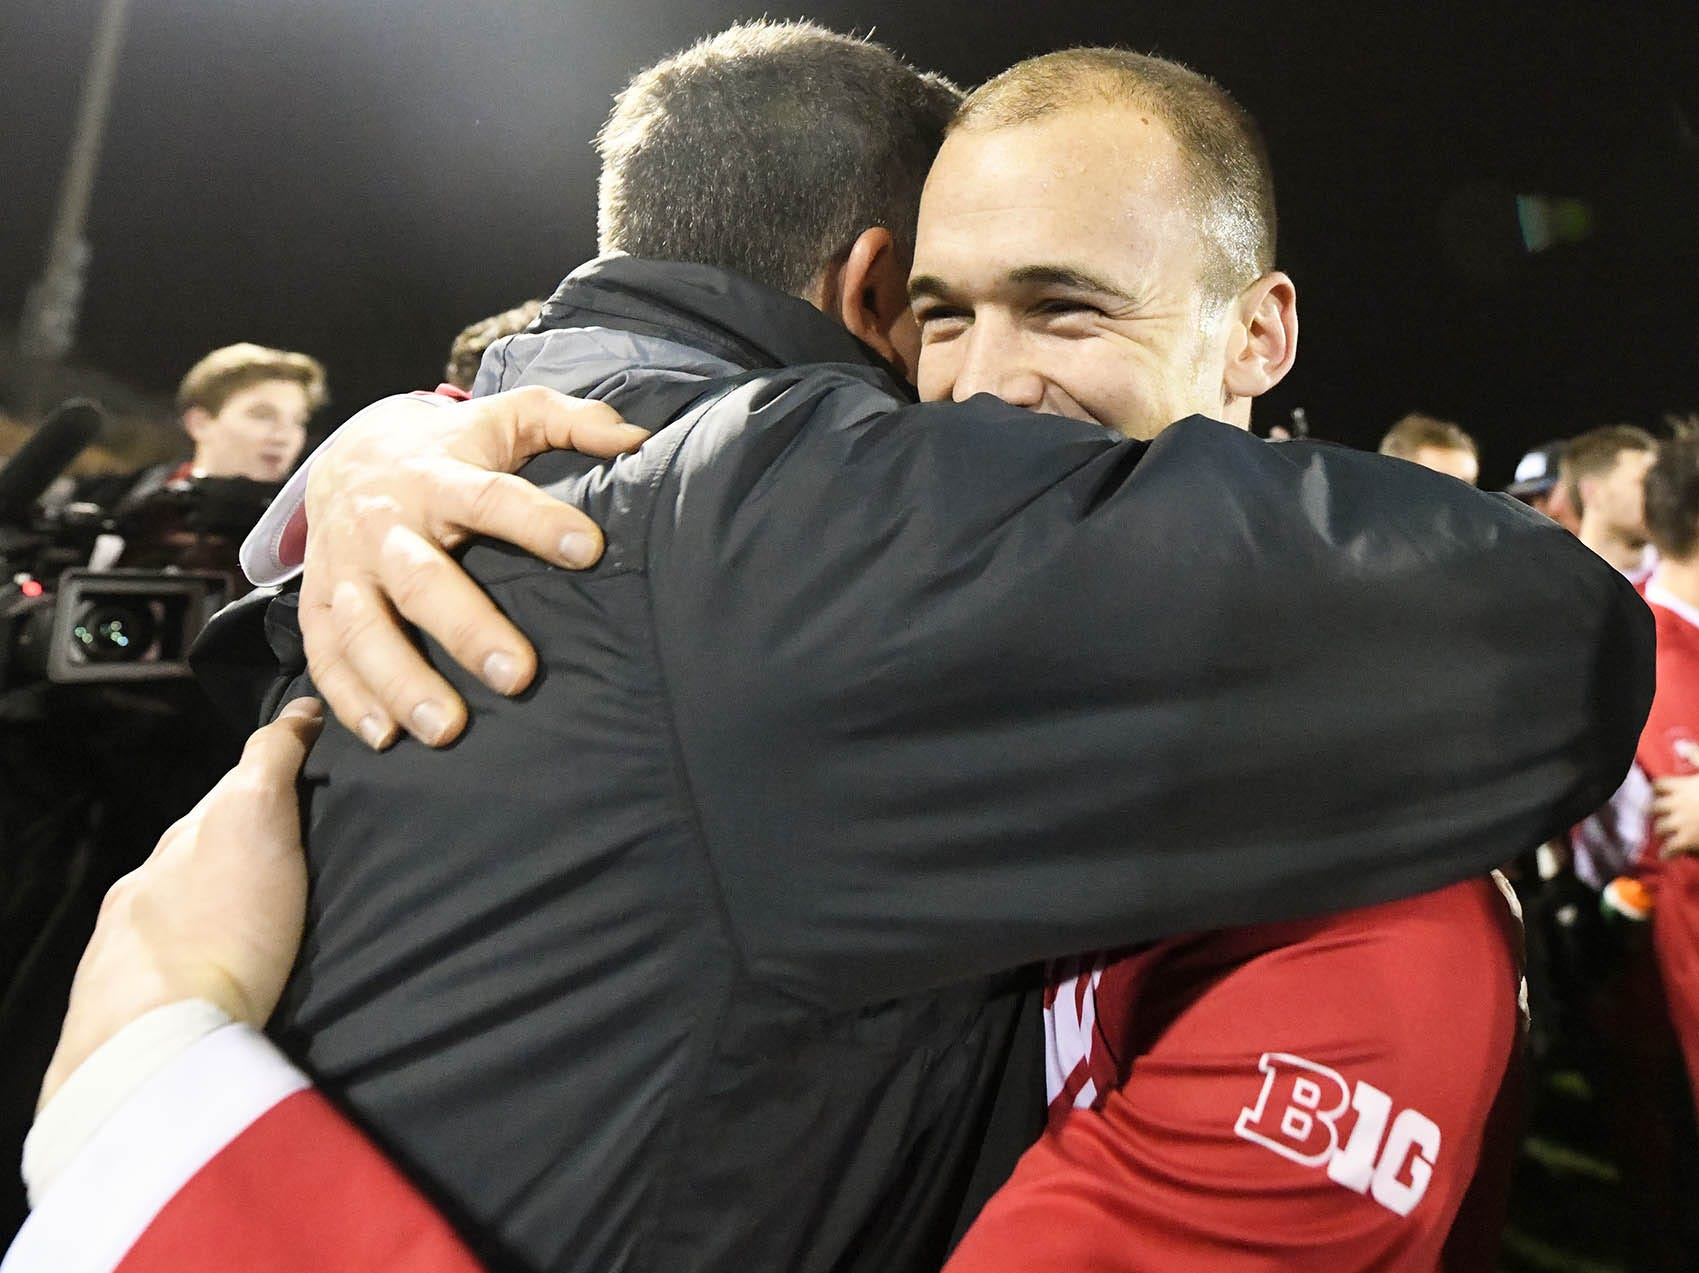 Indiana Hoosiers head coach Todd Yeagley (left) and Indiana Hoosiers defender Andrew Gutman (15) hug after winning the NCAA quarterfinal match against Notre Dame at Bill Armstrong Stadium in Bloomington Ind., on Friday, Nov. 30, 2018.